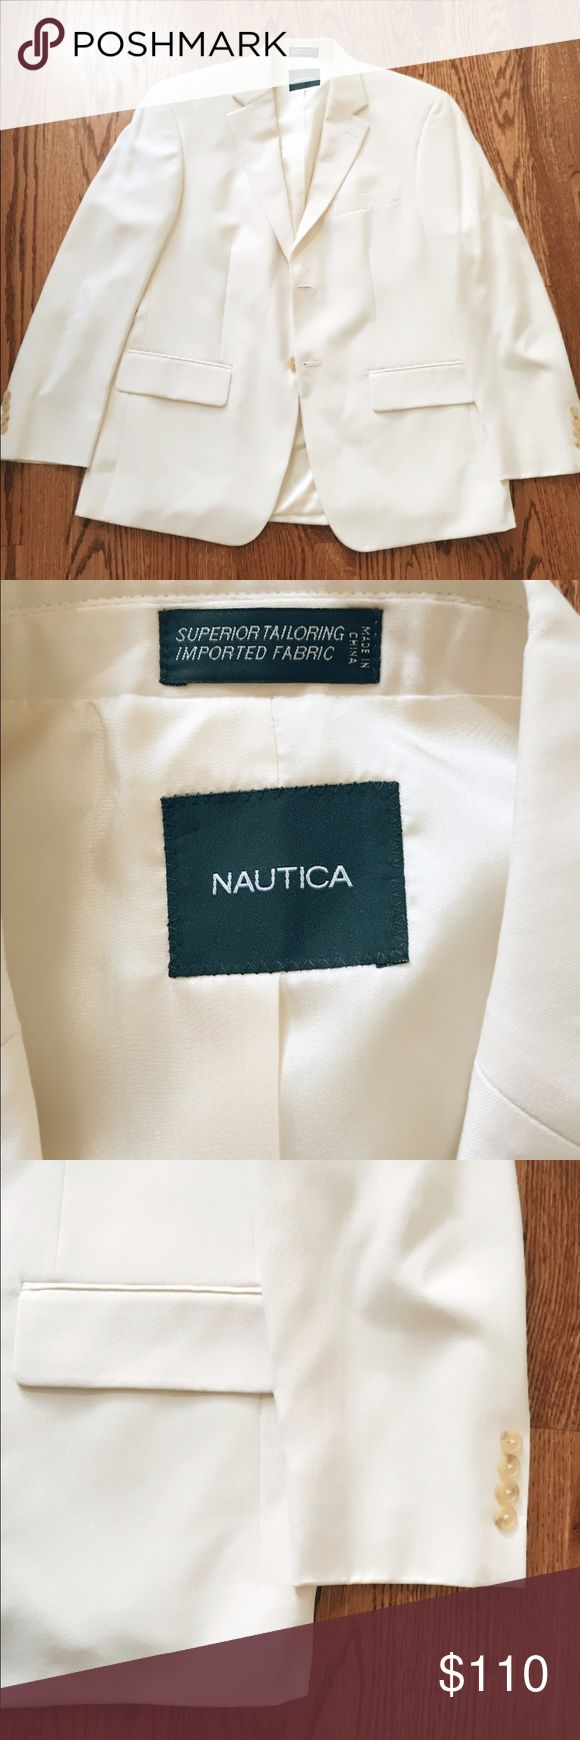 Nautica Silk Blazer Sport Coat NWOT In perfect, NWOT condition. Never worn, no stains, no rips, no imperfections. Selling for a friend who bought this for her husband and he never wore it.                                          🏡 smoke and pet free home 🏡 Nautica Suits & Blazers Sport Coats & Blazers